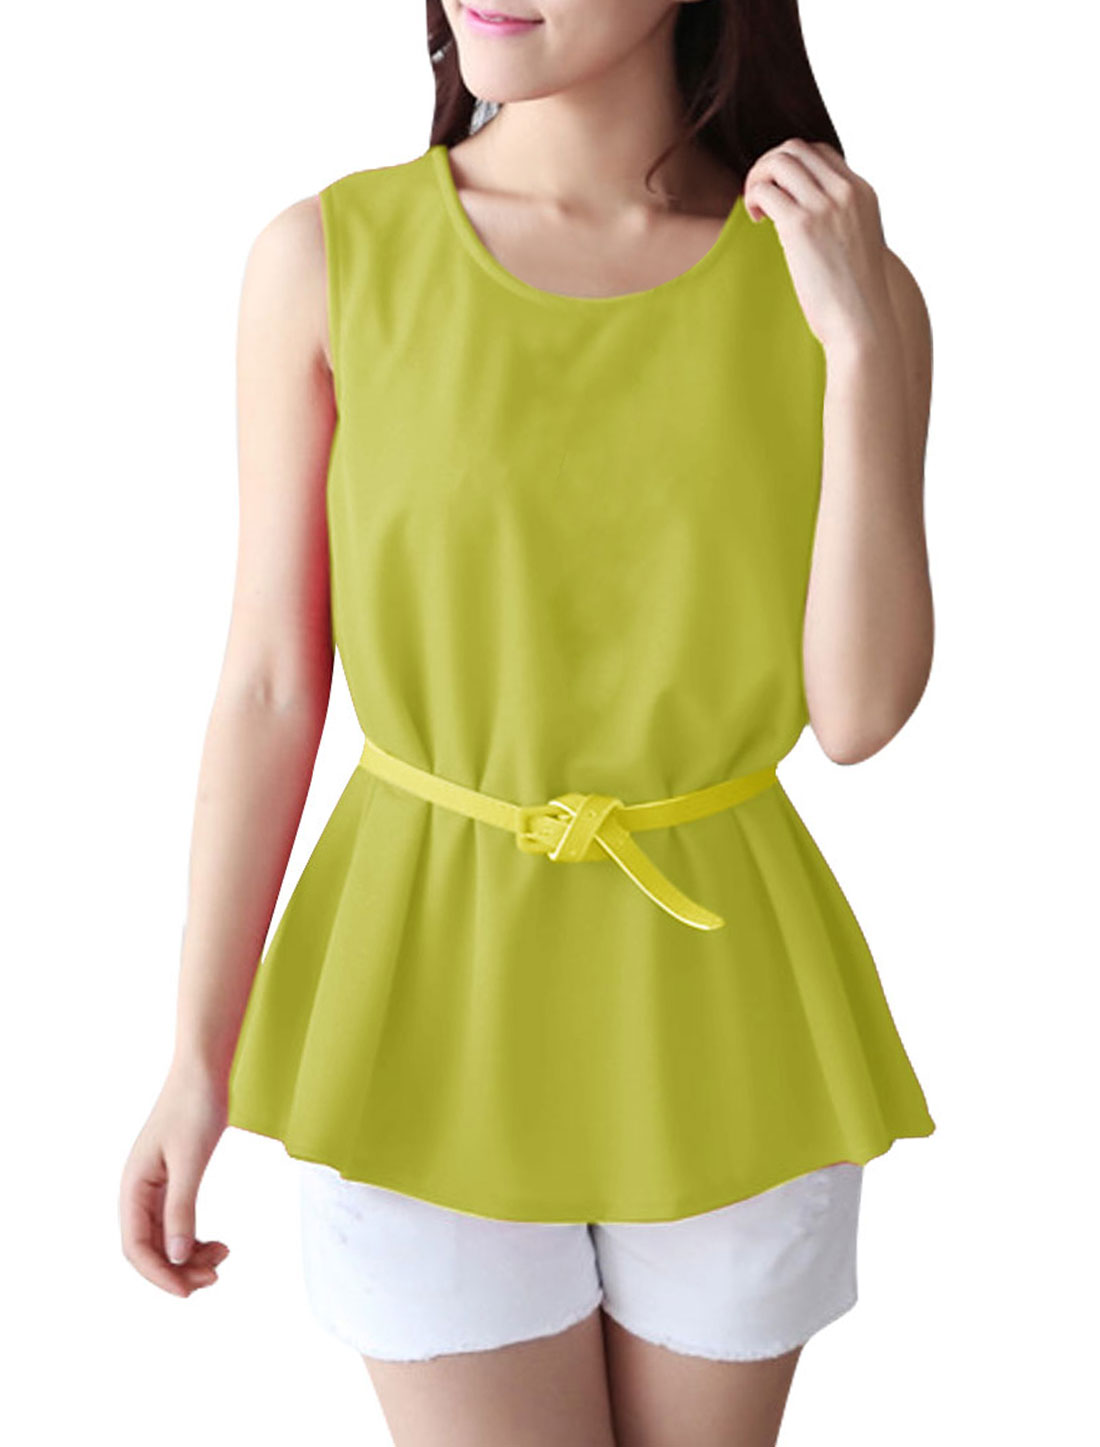 Flare Hem Design Solid Color Yellow Tank Top w Faux Leather Belt for Lady S